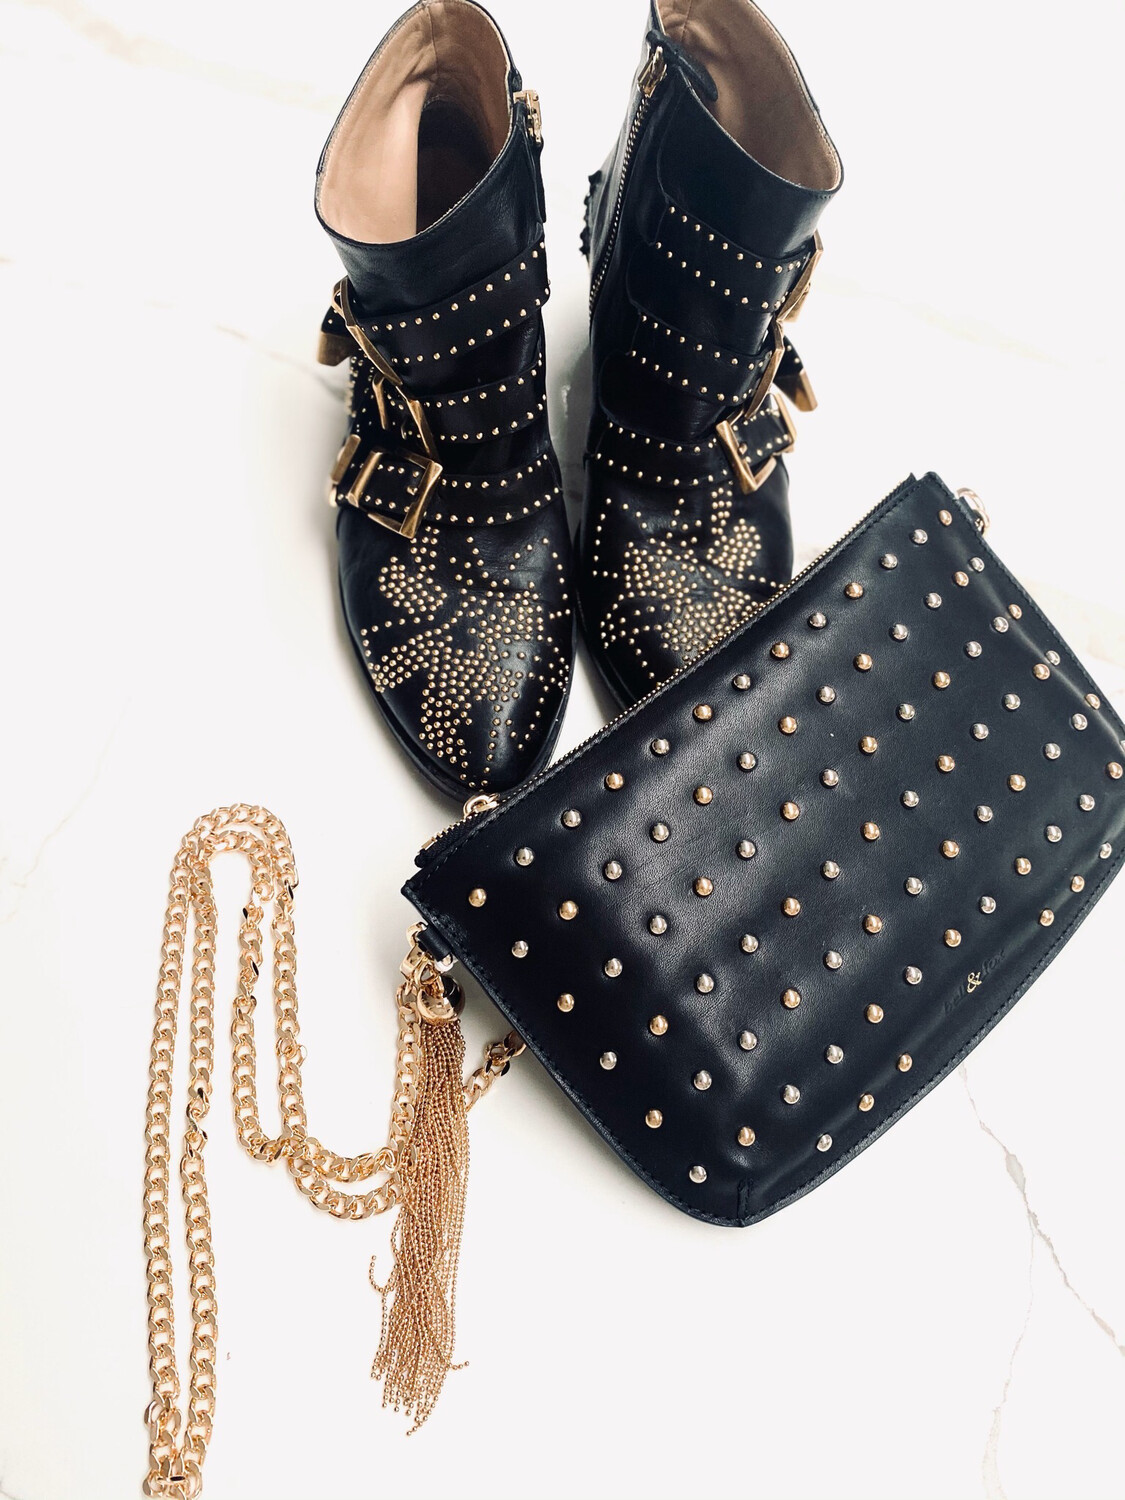 Bell & Fox Ivy Stud Chain Crossbody / Clutch Black